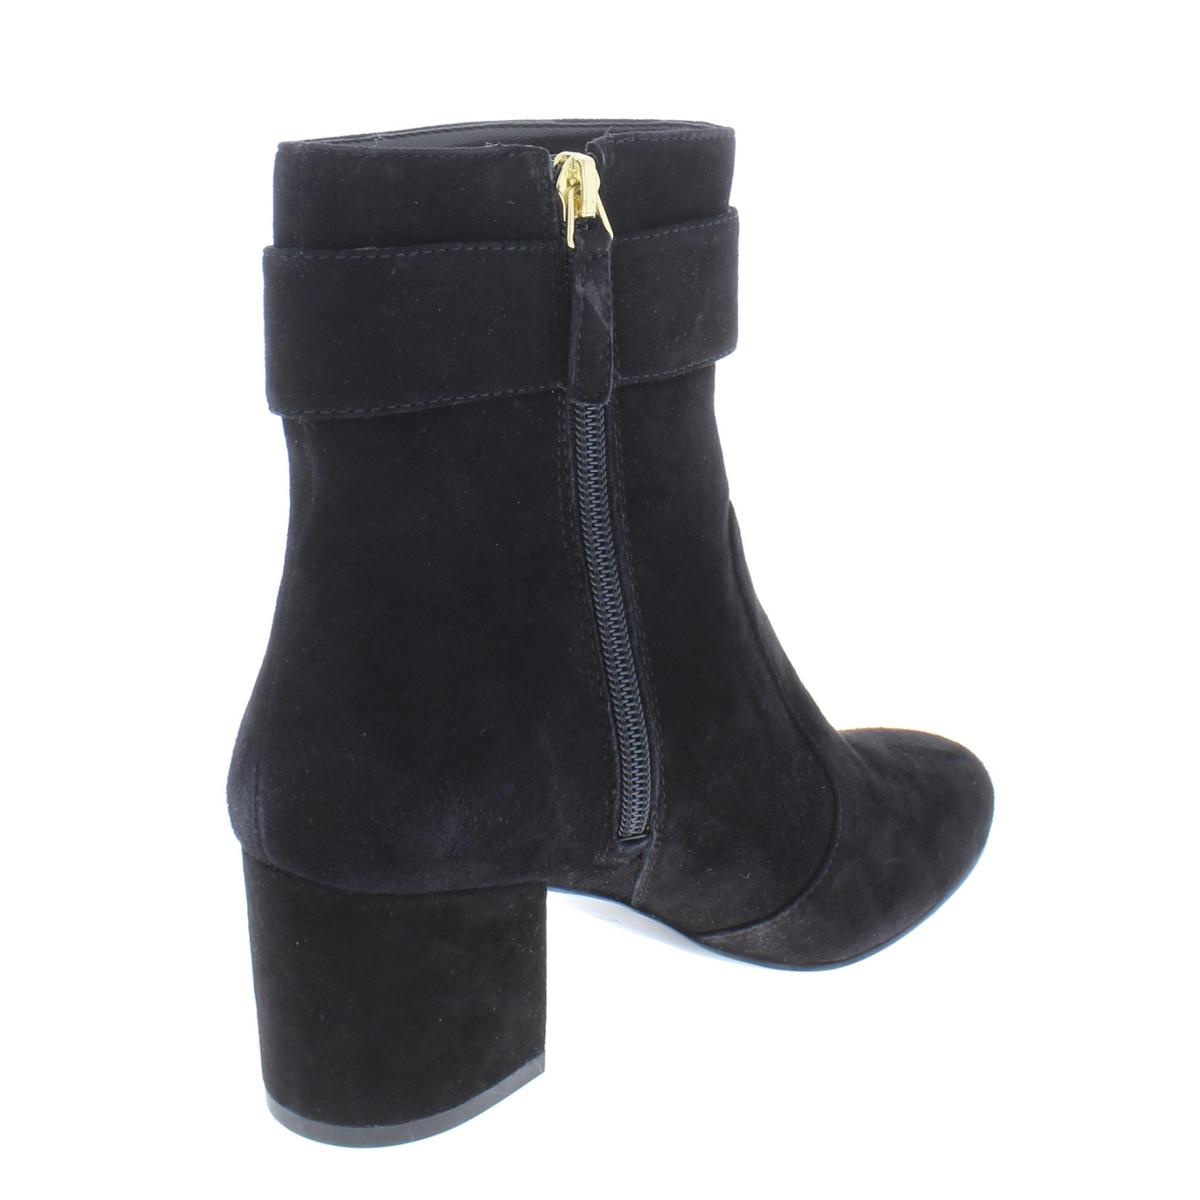 Nine West Damenschuhe Quilby Suede ... Block Heel Ankle Booties Schuhes BHFO ... Suede fe4599